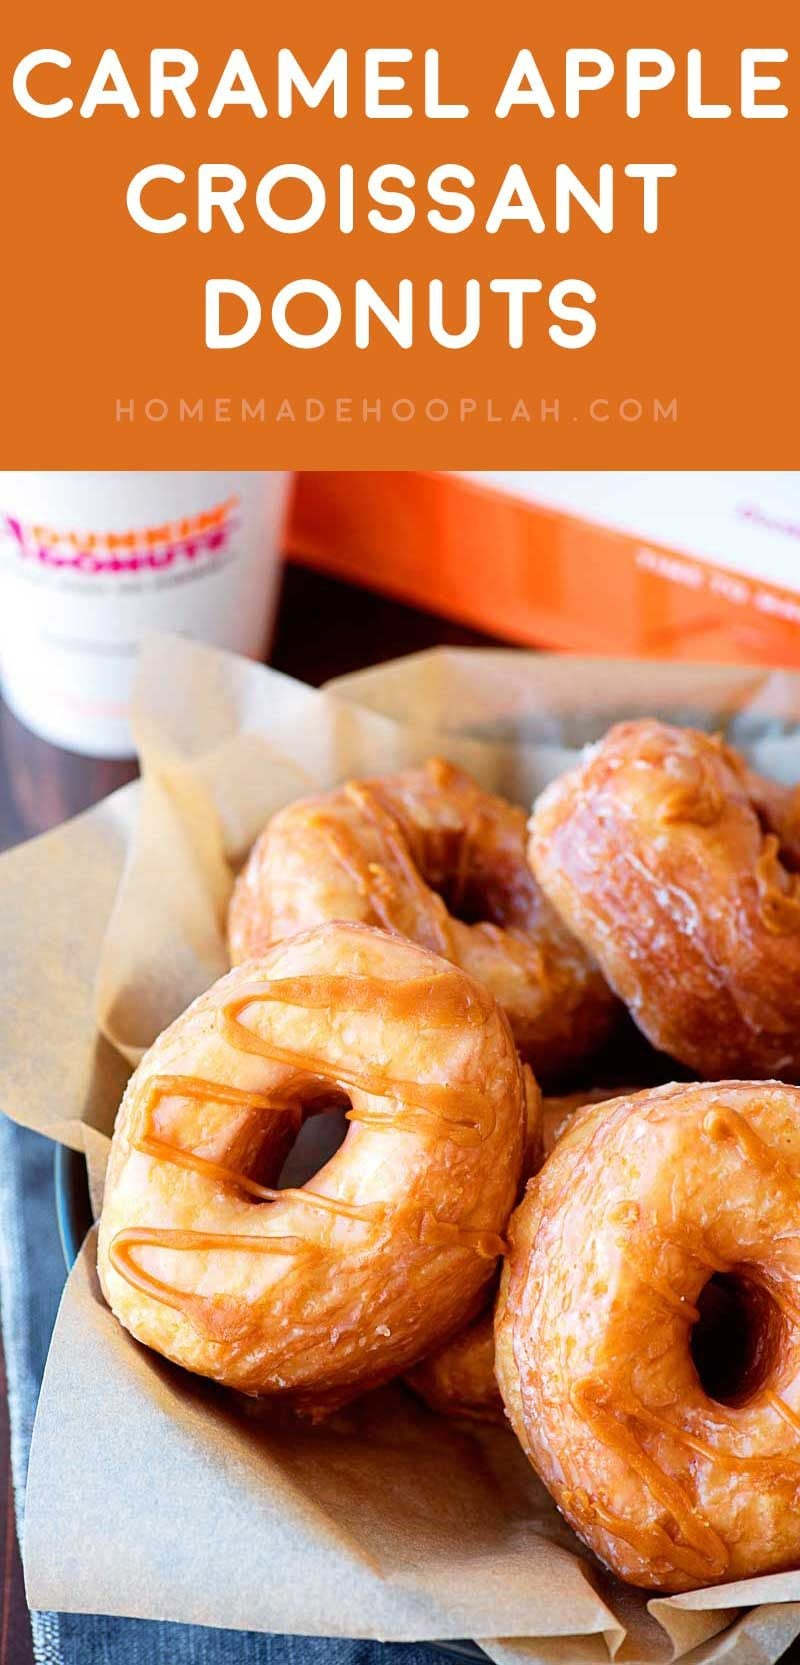 The Absolute Best Donut for Fall! Need a new foodie favorite for this fall? You're in luck! These Caramel Apple Croissant Donuts from Dunkin' Donuts are the best type of treat for any time of day! | HomemadeHooplah.com AD